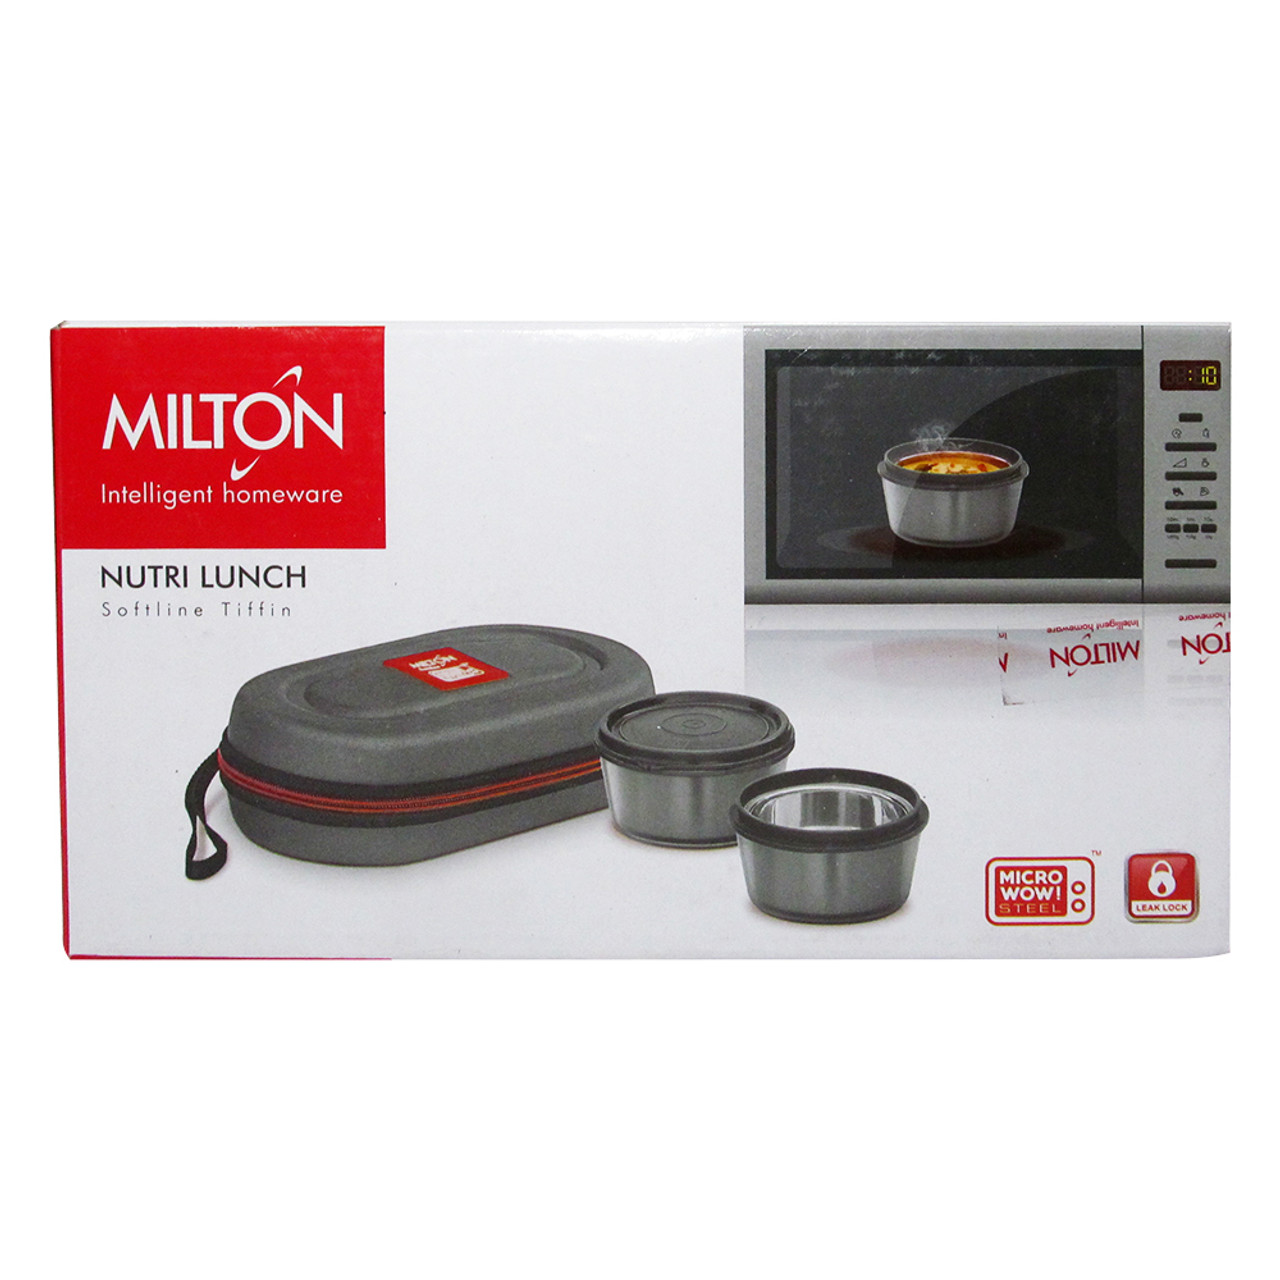 Milton Soft Line Nutri Lunch, 2 Round Leak Proof Container Insulated Lunch Box - Image 9